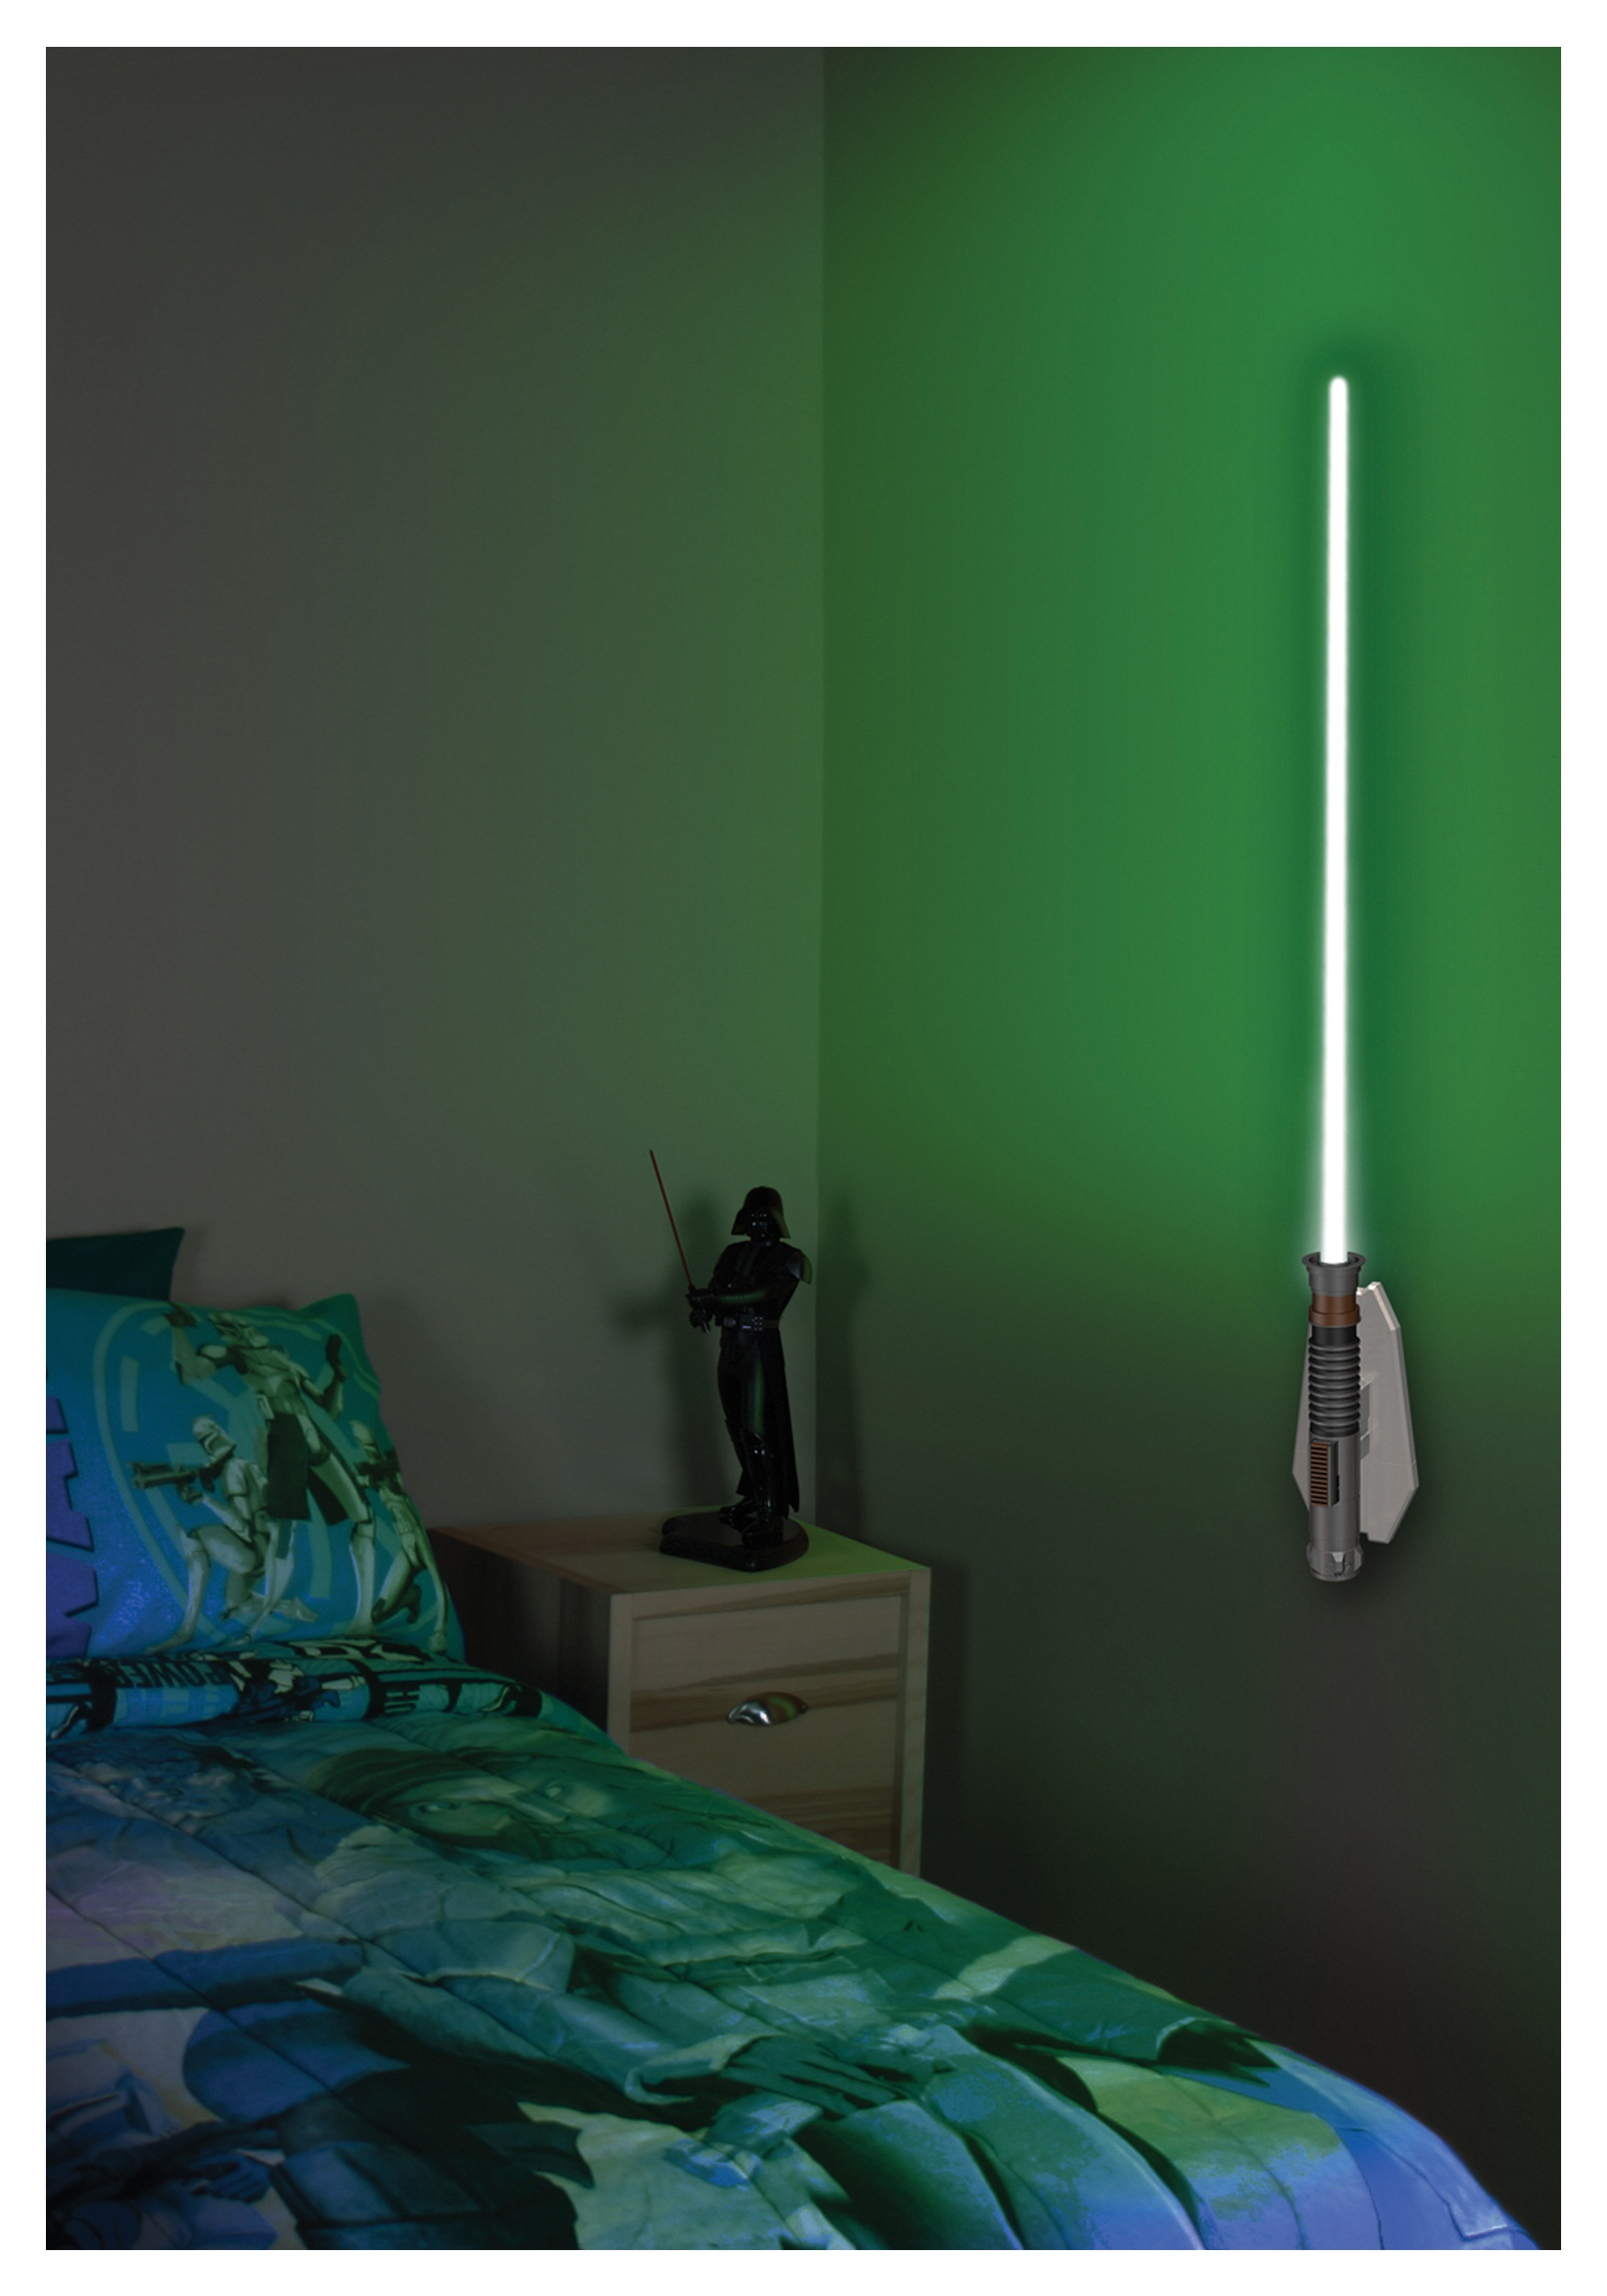 Luke Skywalker Lightsaber Room Light UM15046